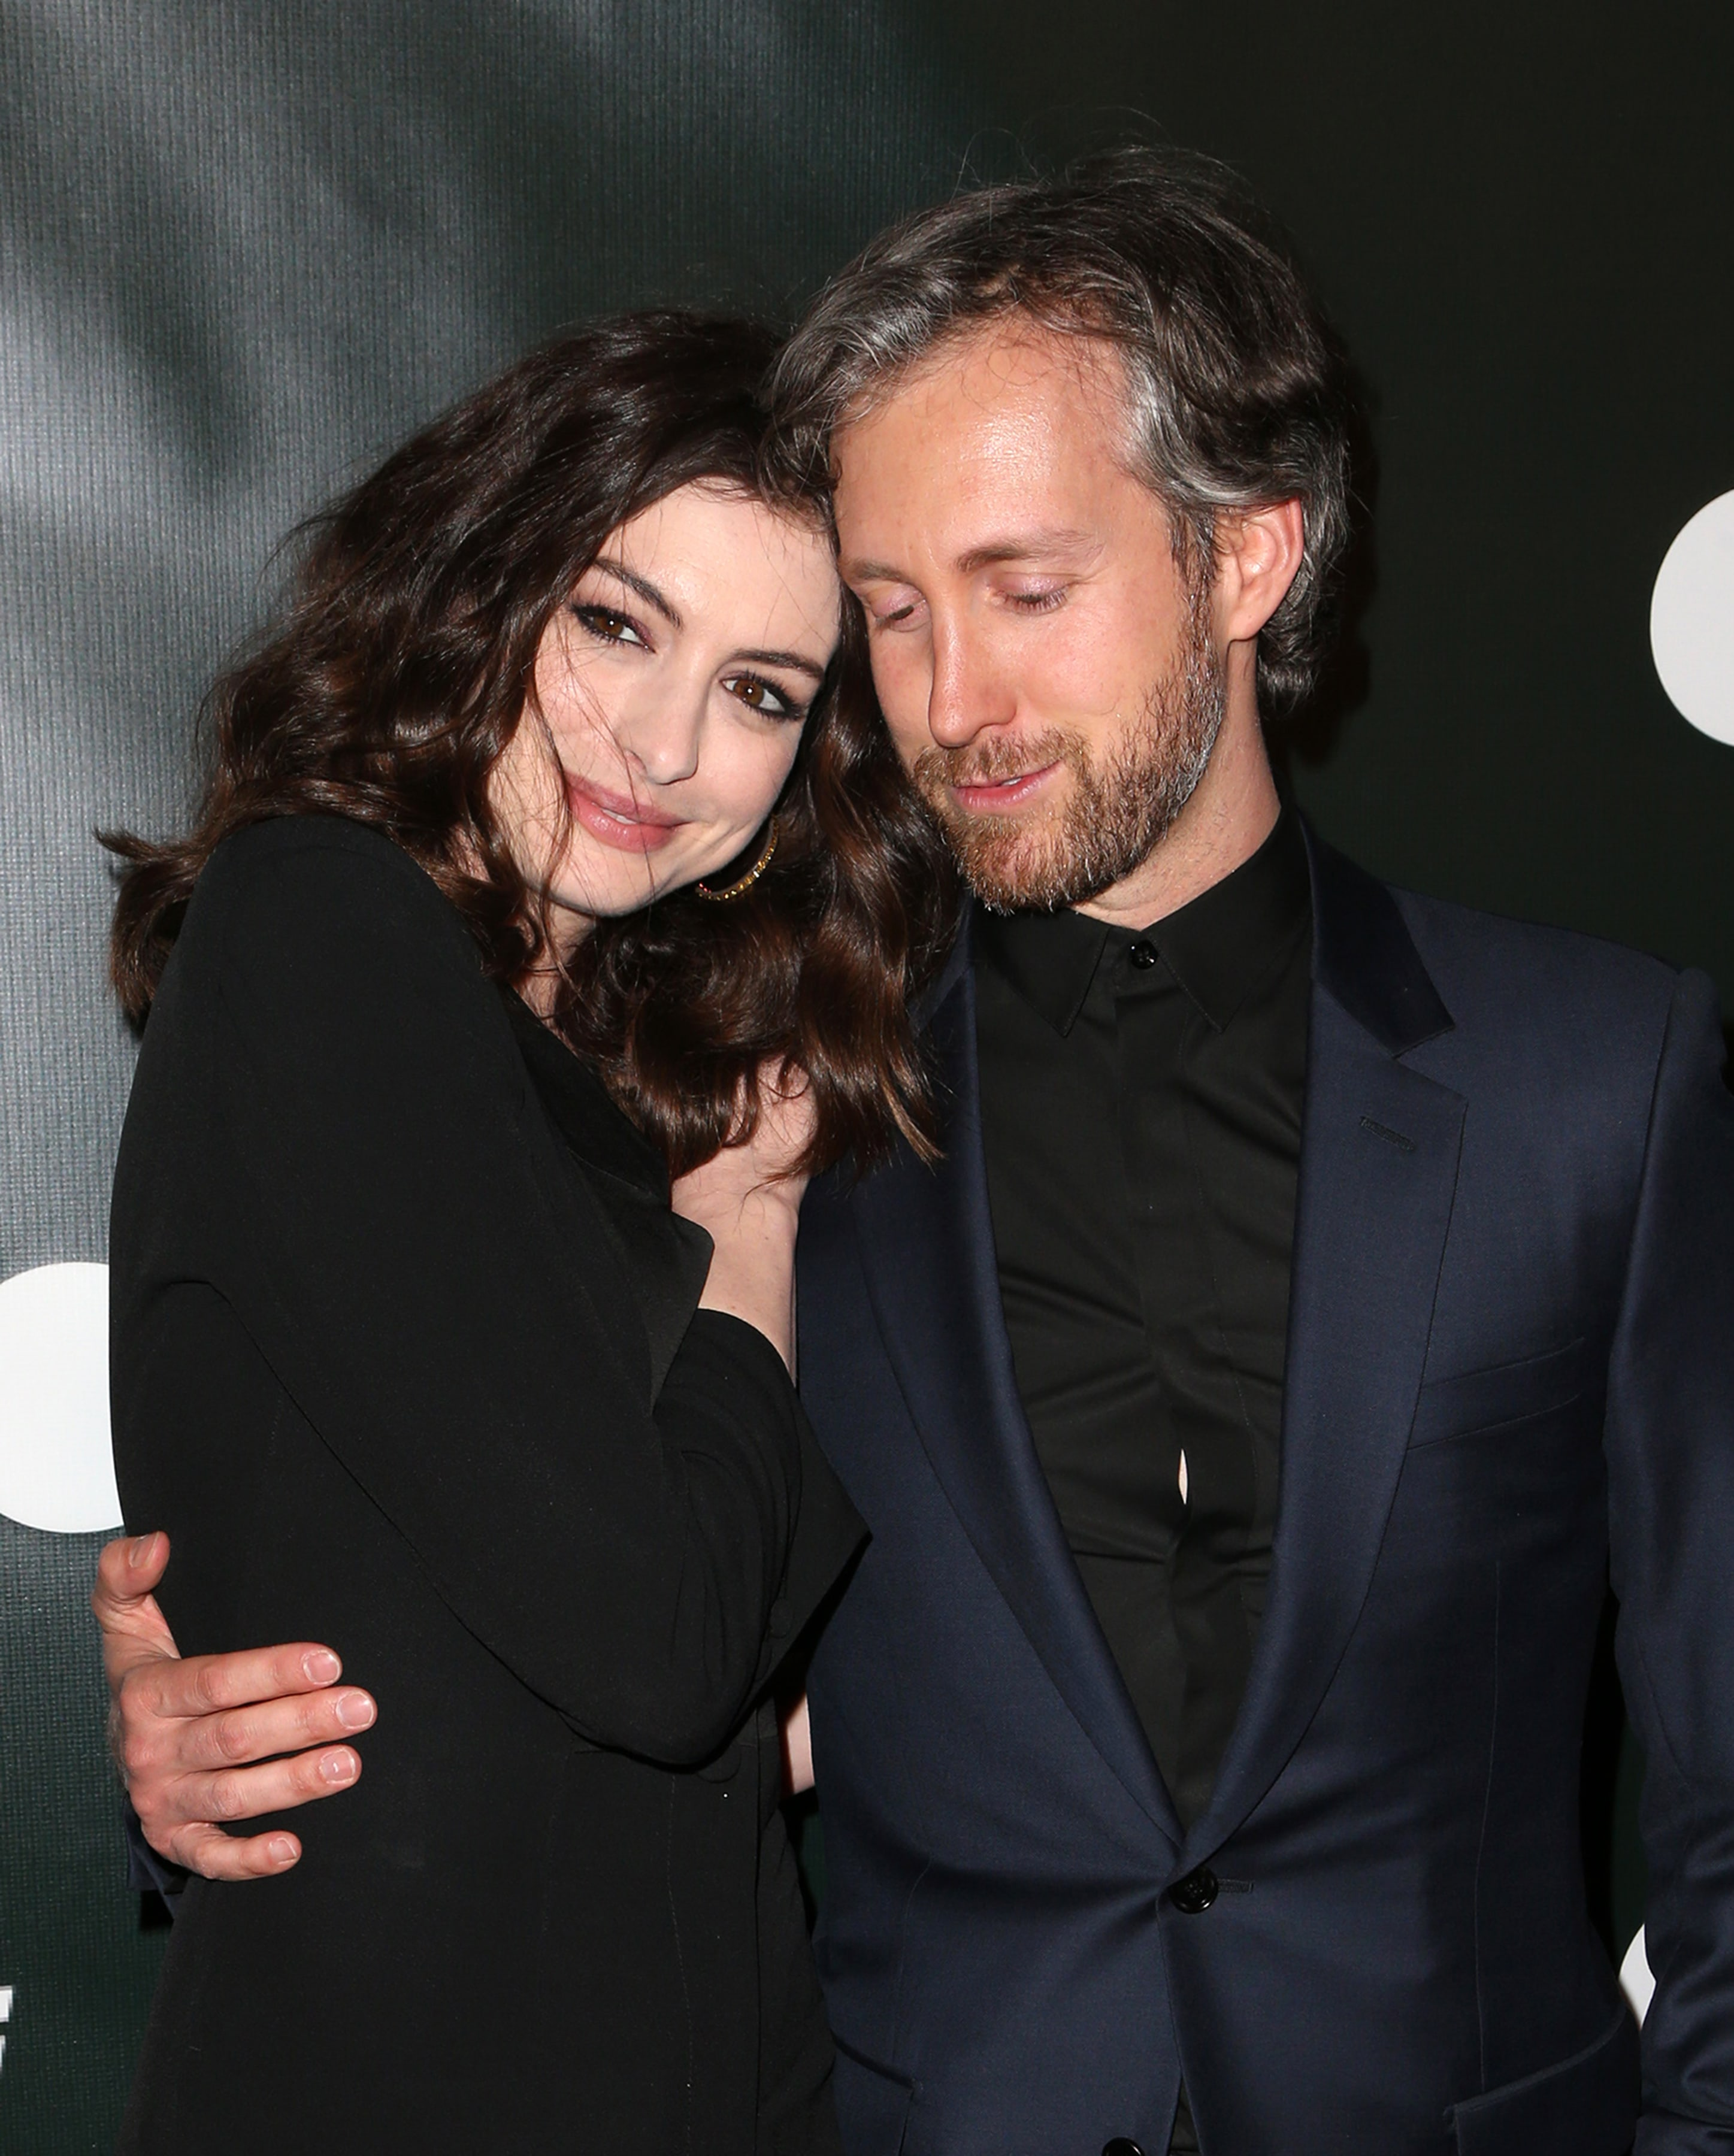 Anne Hathaway Spouse: Anne Hathaway Slams Fat Shamers In Anticipation To Her